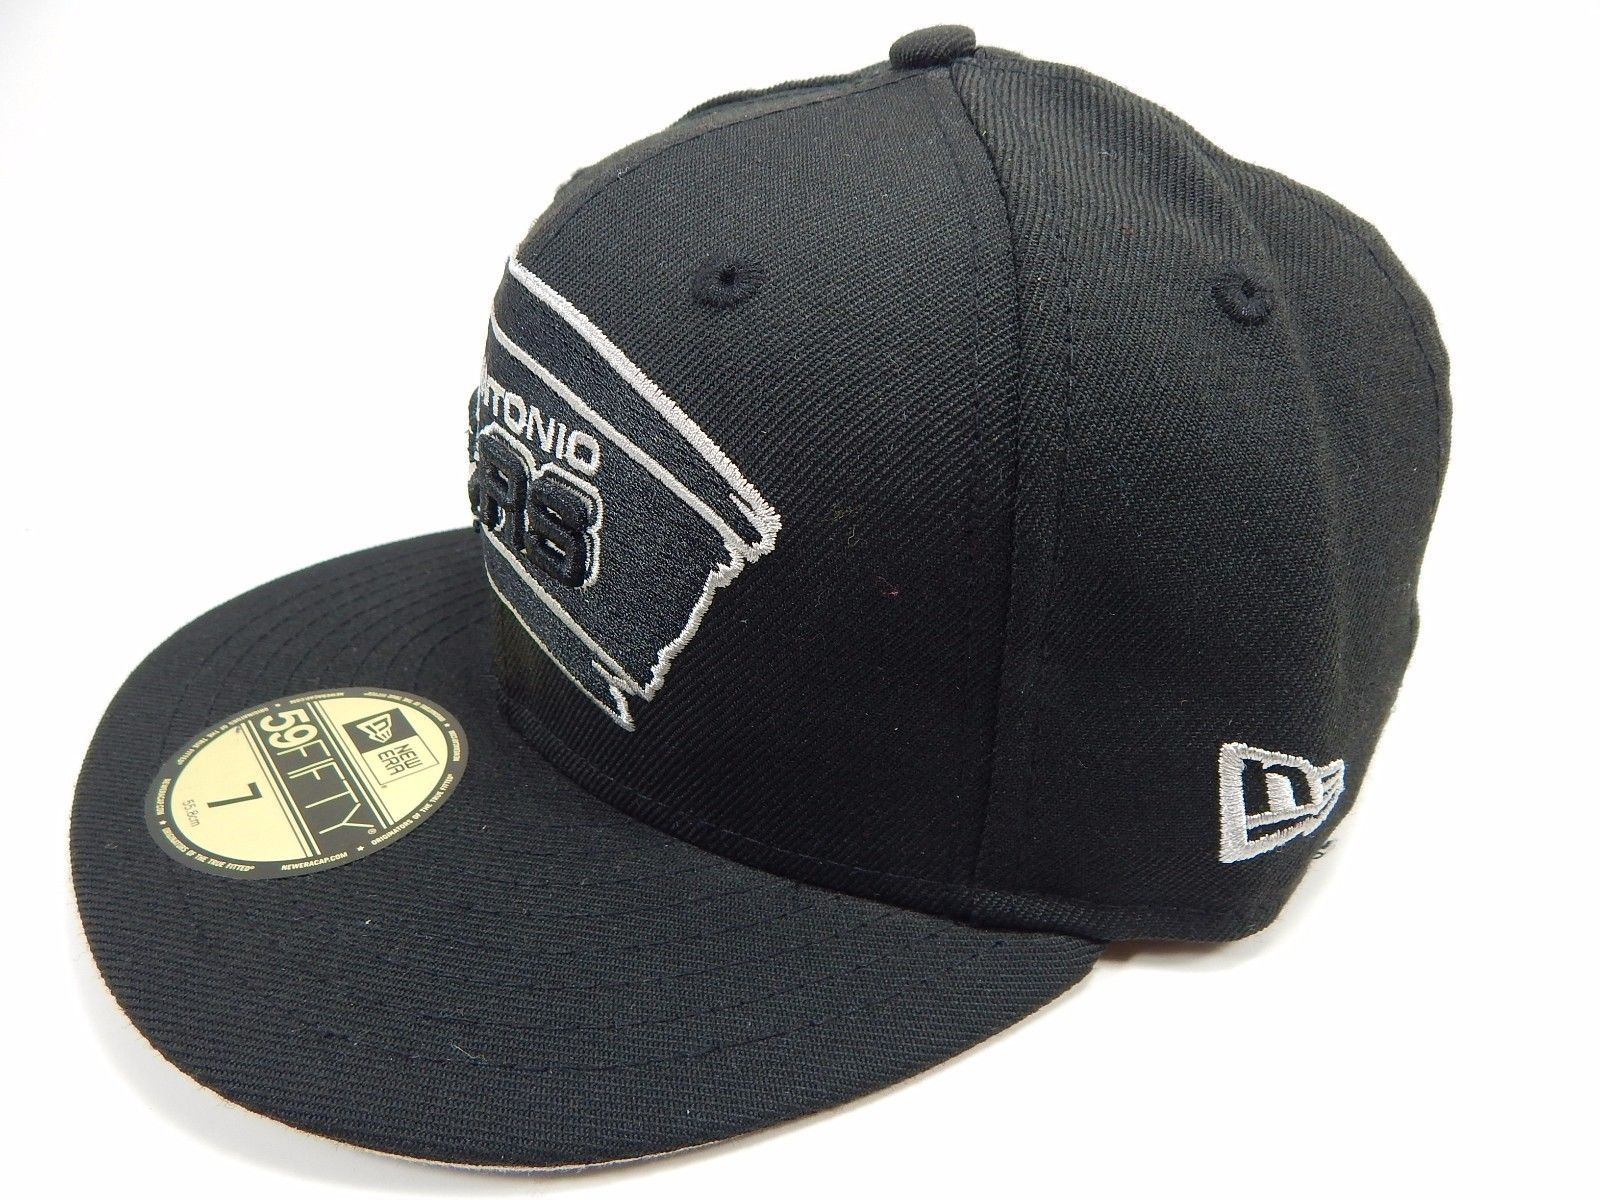 San Antonio Spurs New Era Size 7 Fitted 59Fifty Official NBA Cap Hat Black White